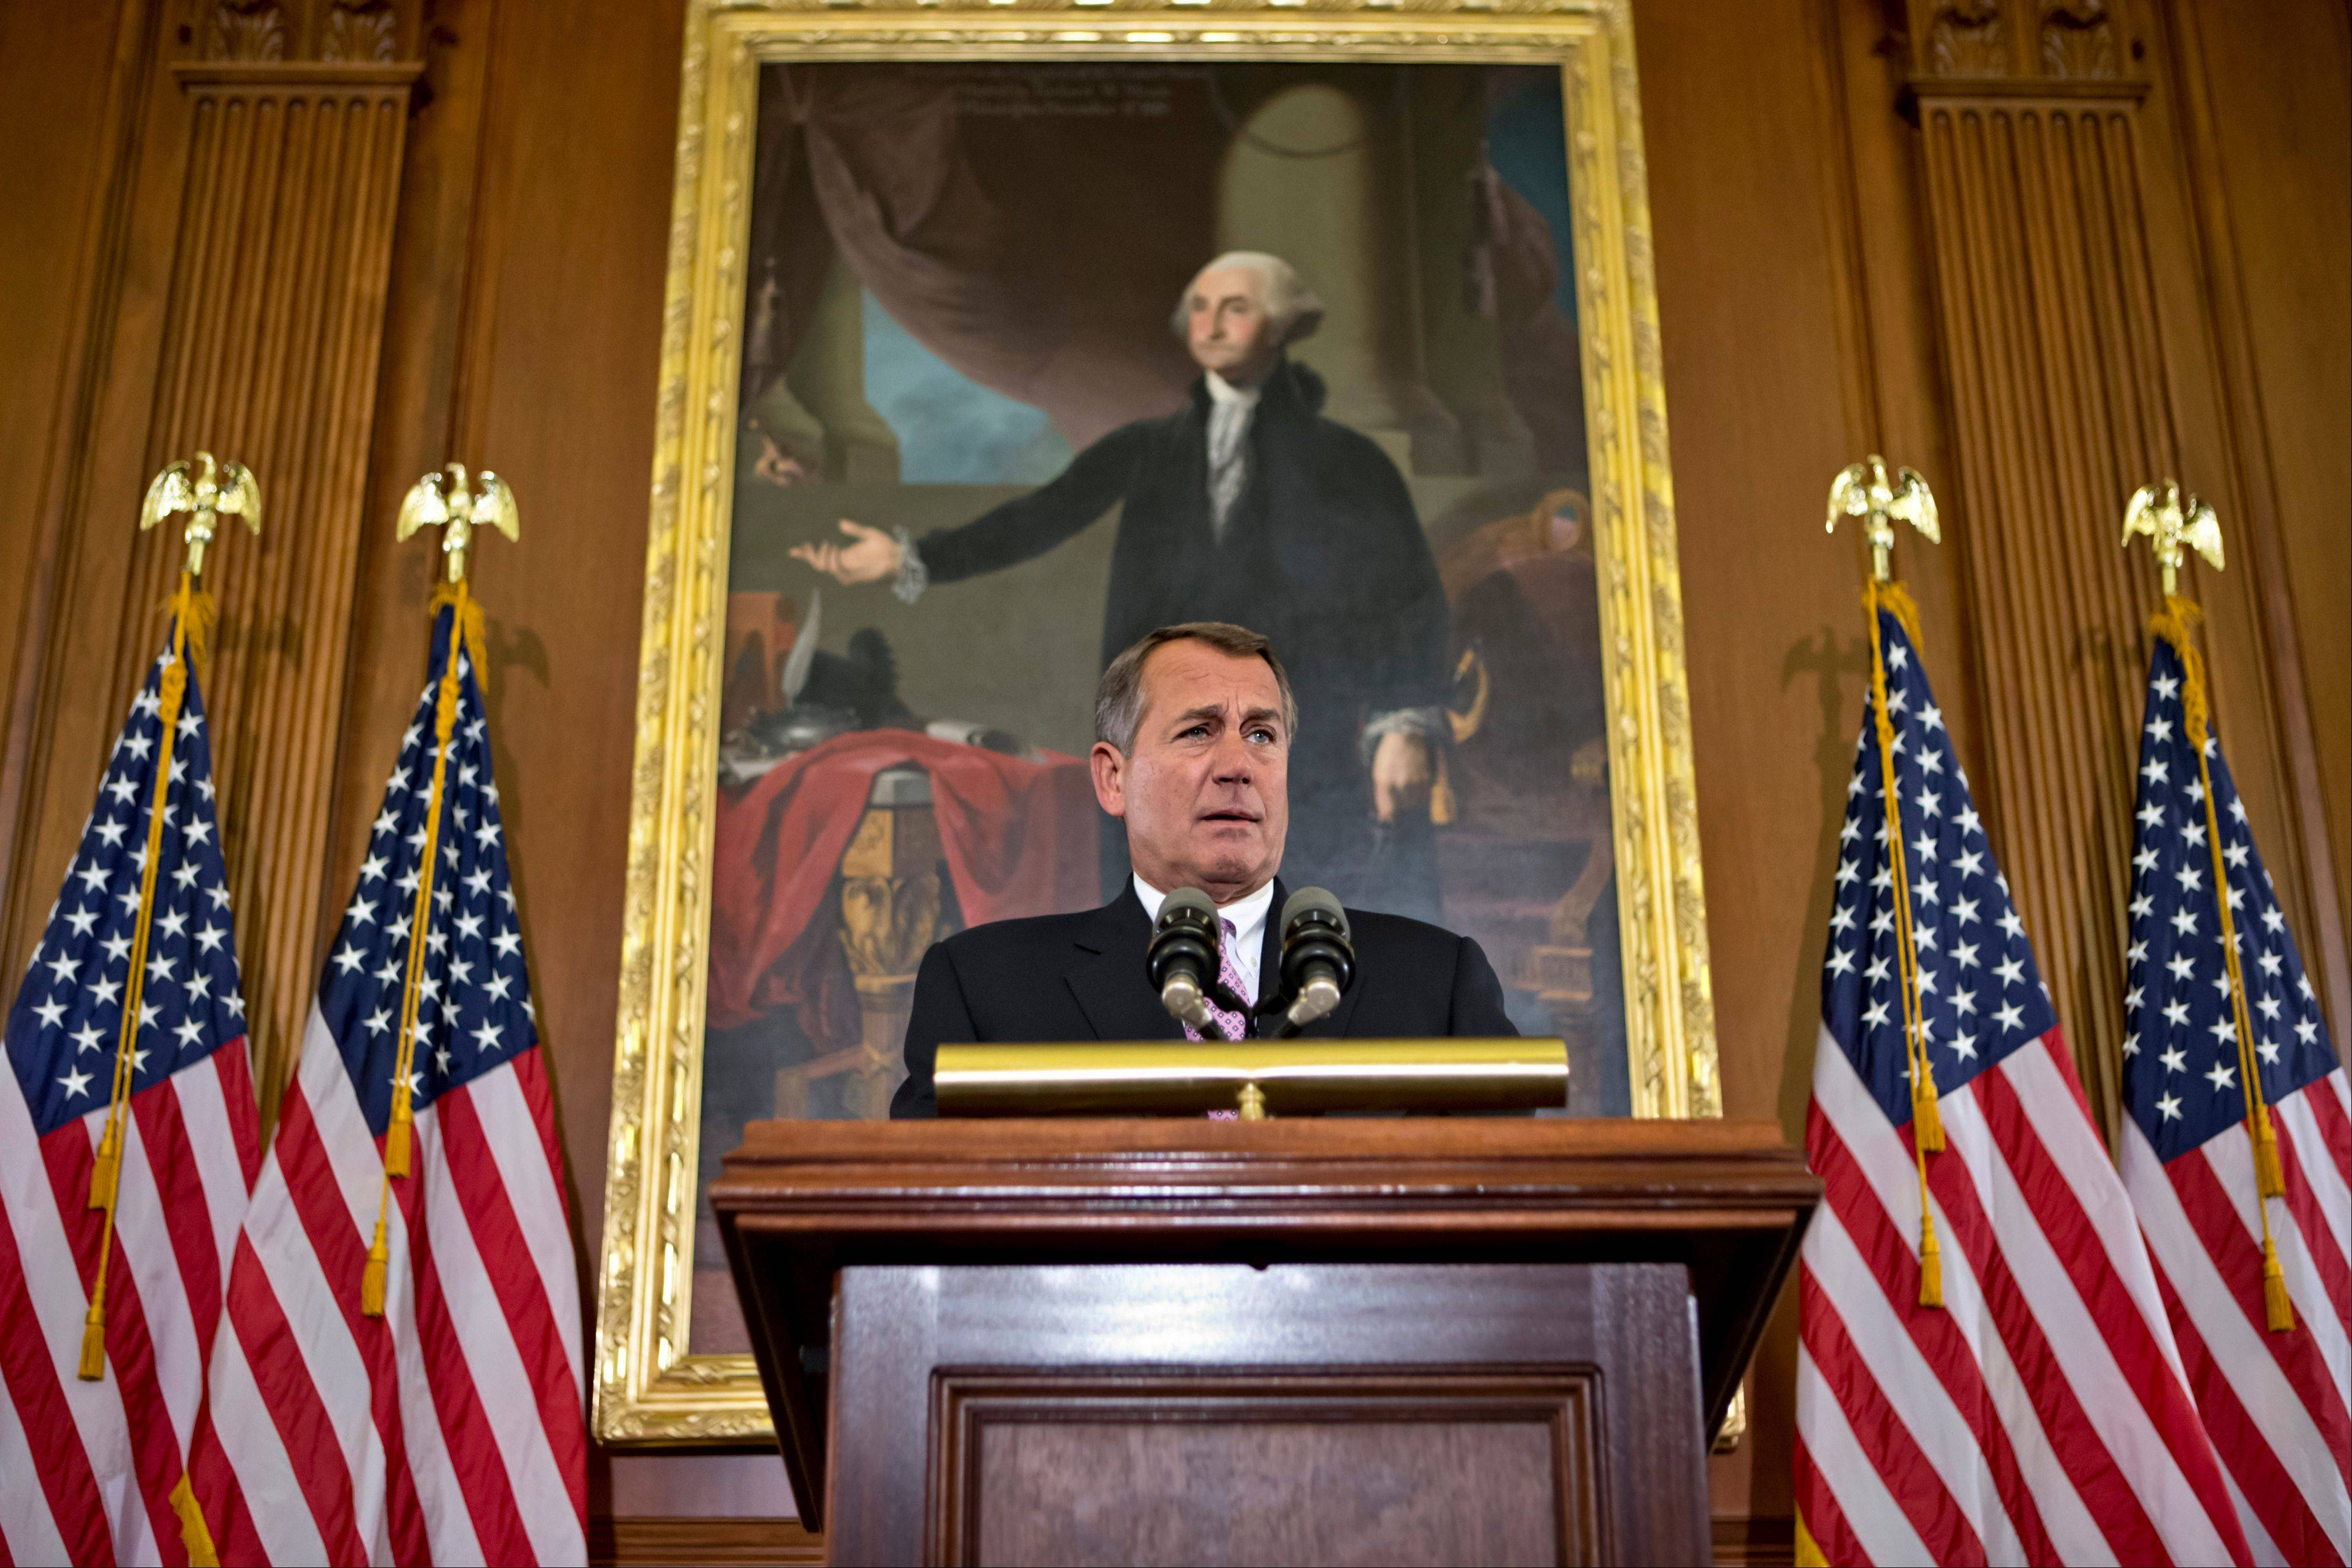 House Speaker John Boehner, R-Ohio, says Republicans are willing to consider some form of higher tax revenue as part of the solution to the �fiscal cliff� problem � but only under what he calls �the right conditions.�